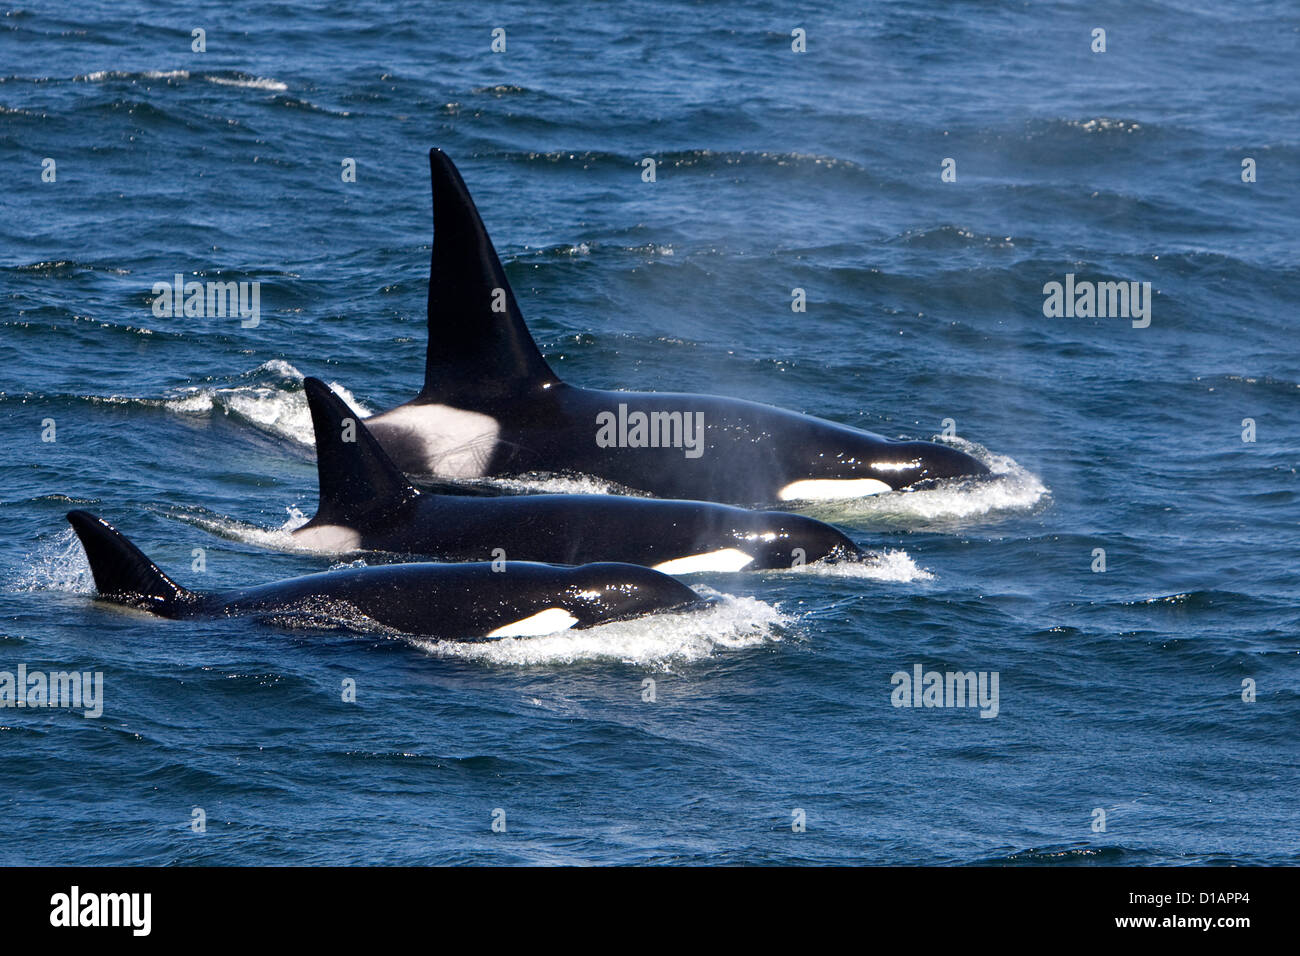 Killer whales, Transient type.Orcinus orca. Monterey Bay, California, USA, Pacific Ocean - Stock Image